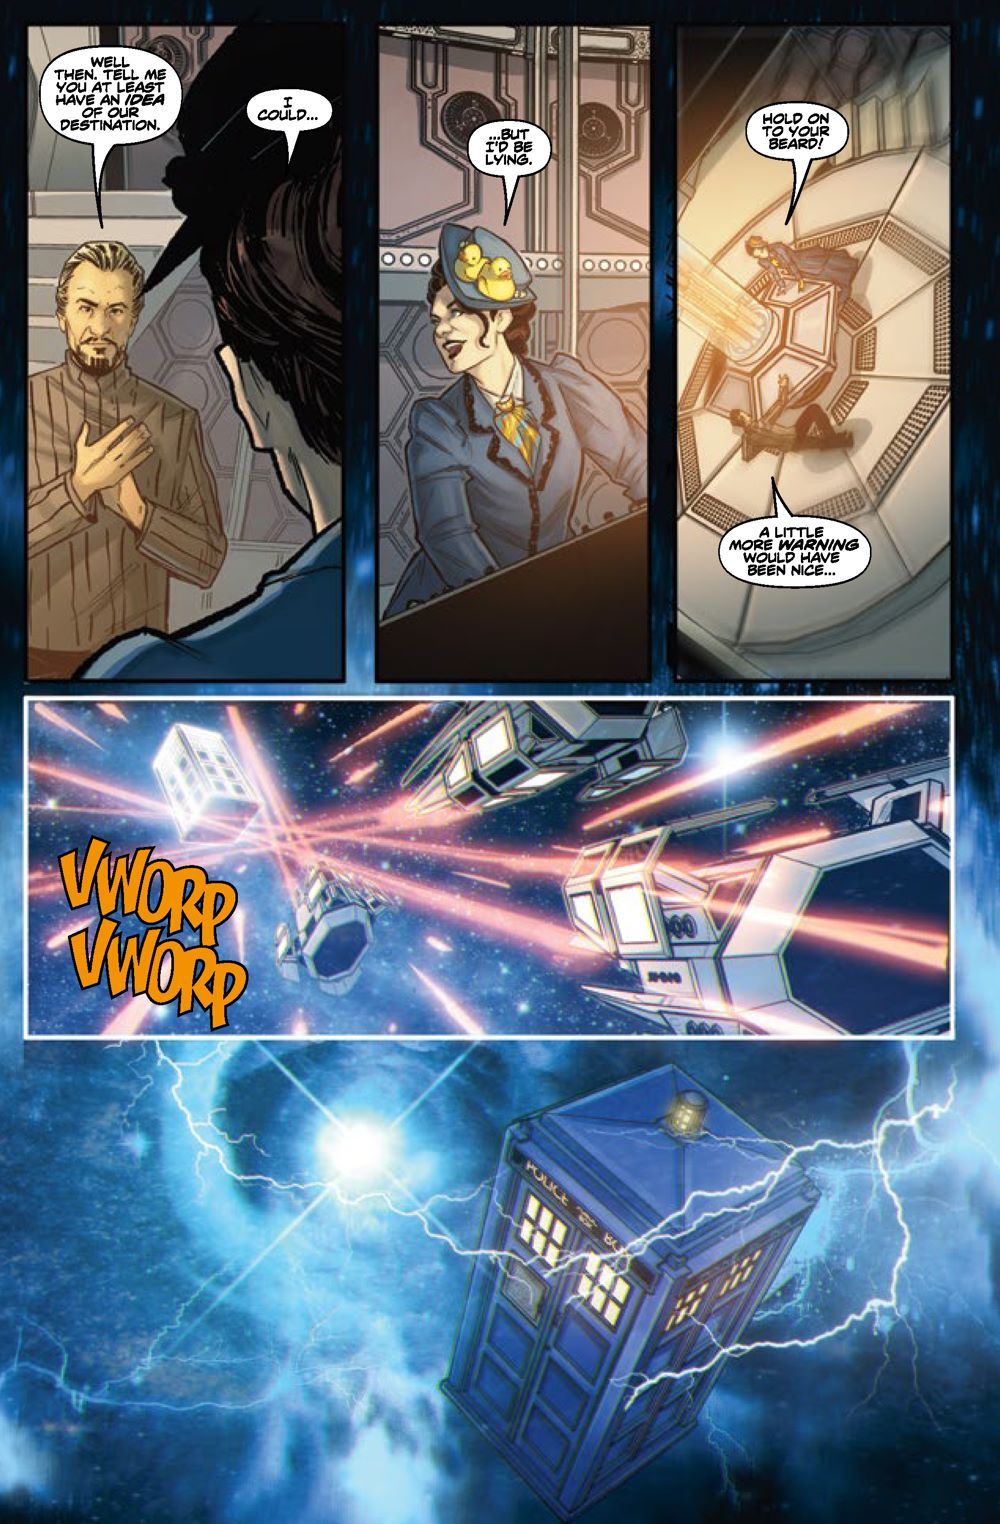 Pages-from-Doctor-Who-Missy-3-Review-pdf_Page_2-1 ComicList Previews: DOCTOR WHO MISSY #3